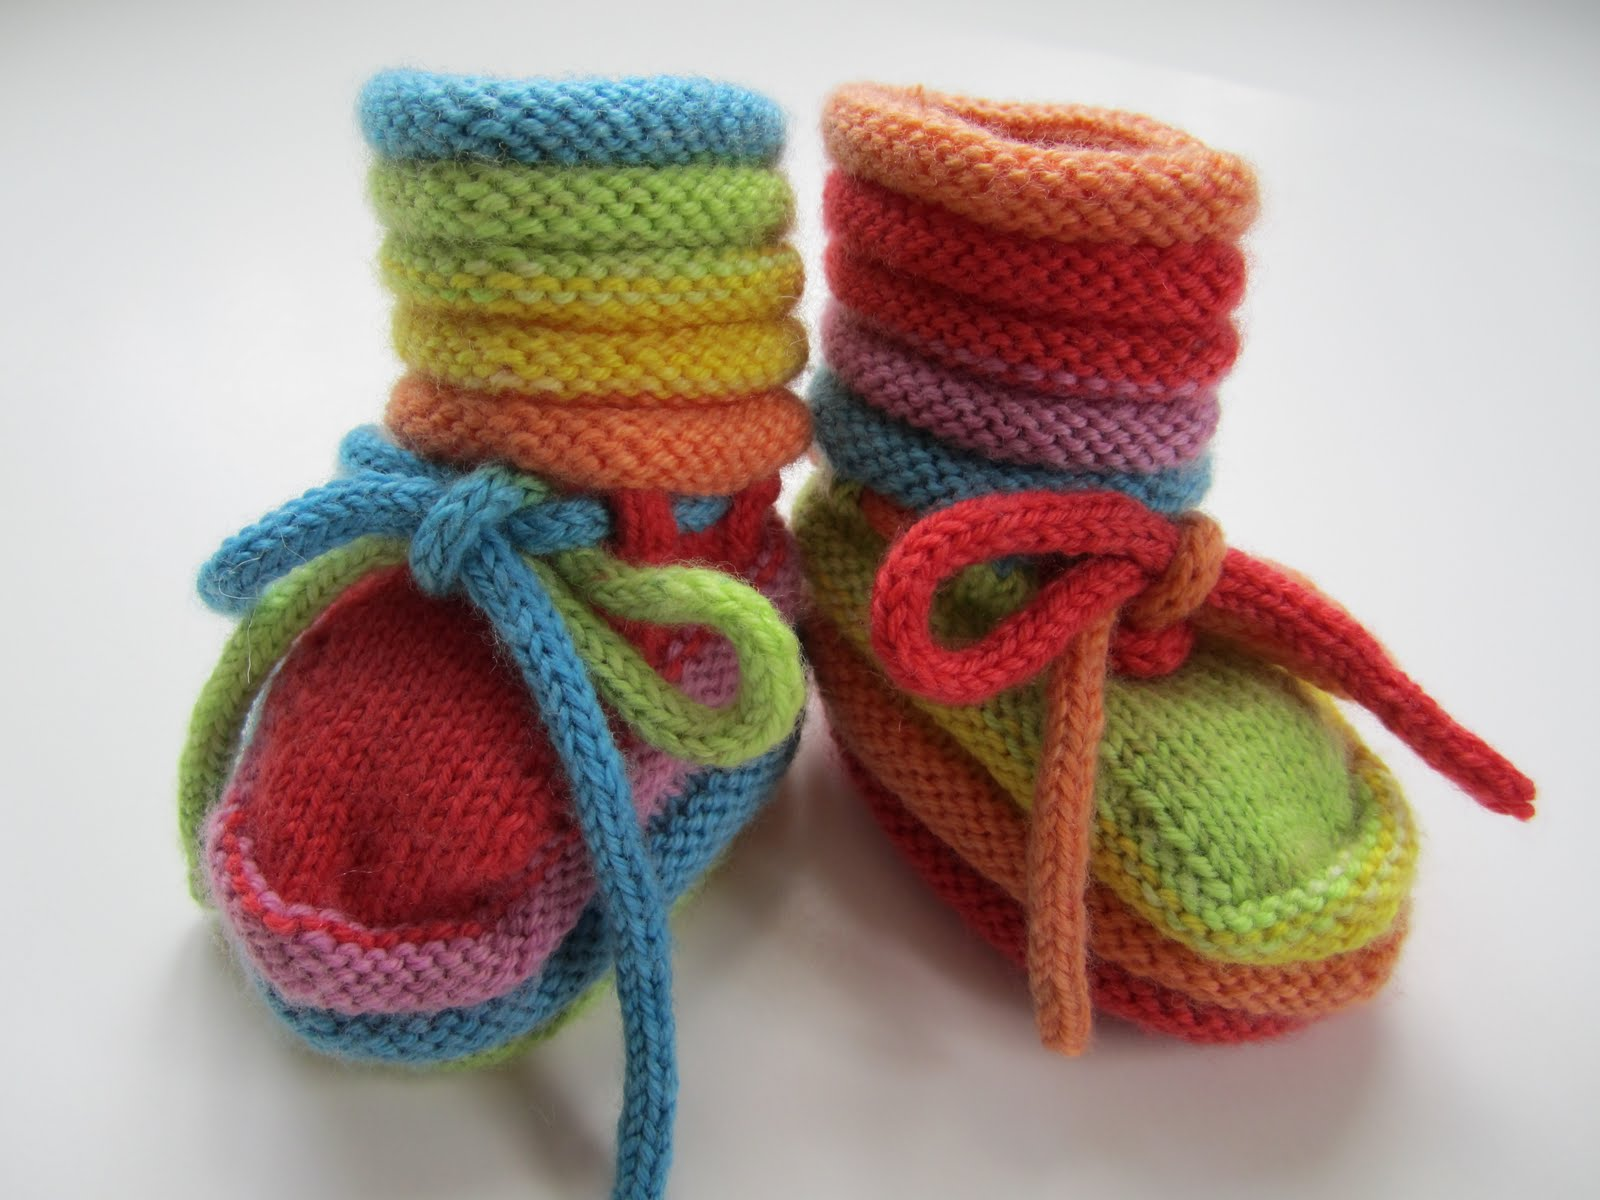 32 knit Patterns Baby Shoes For Winter 2016 - Fashion Craze